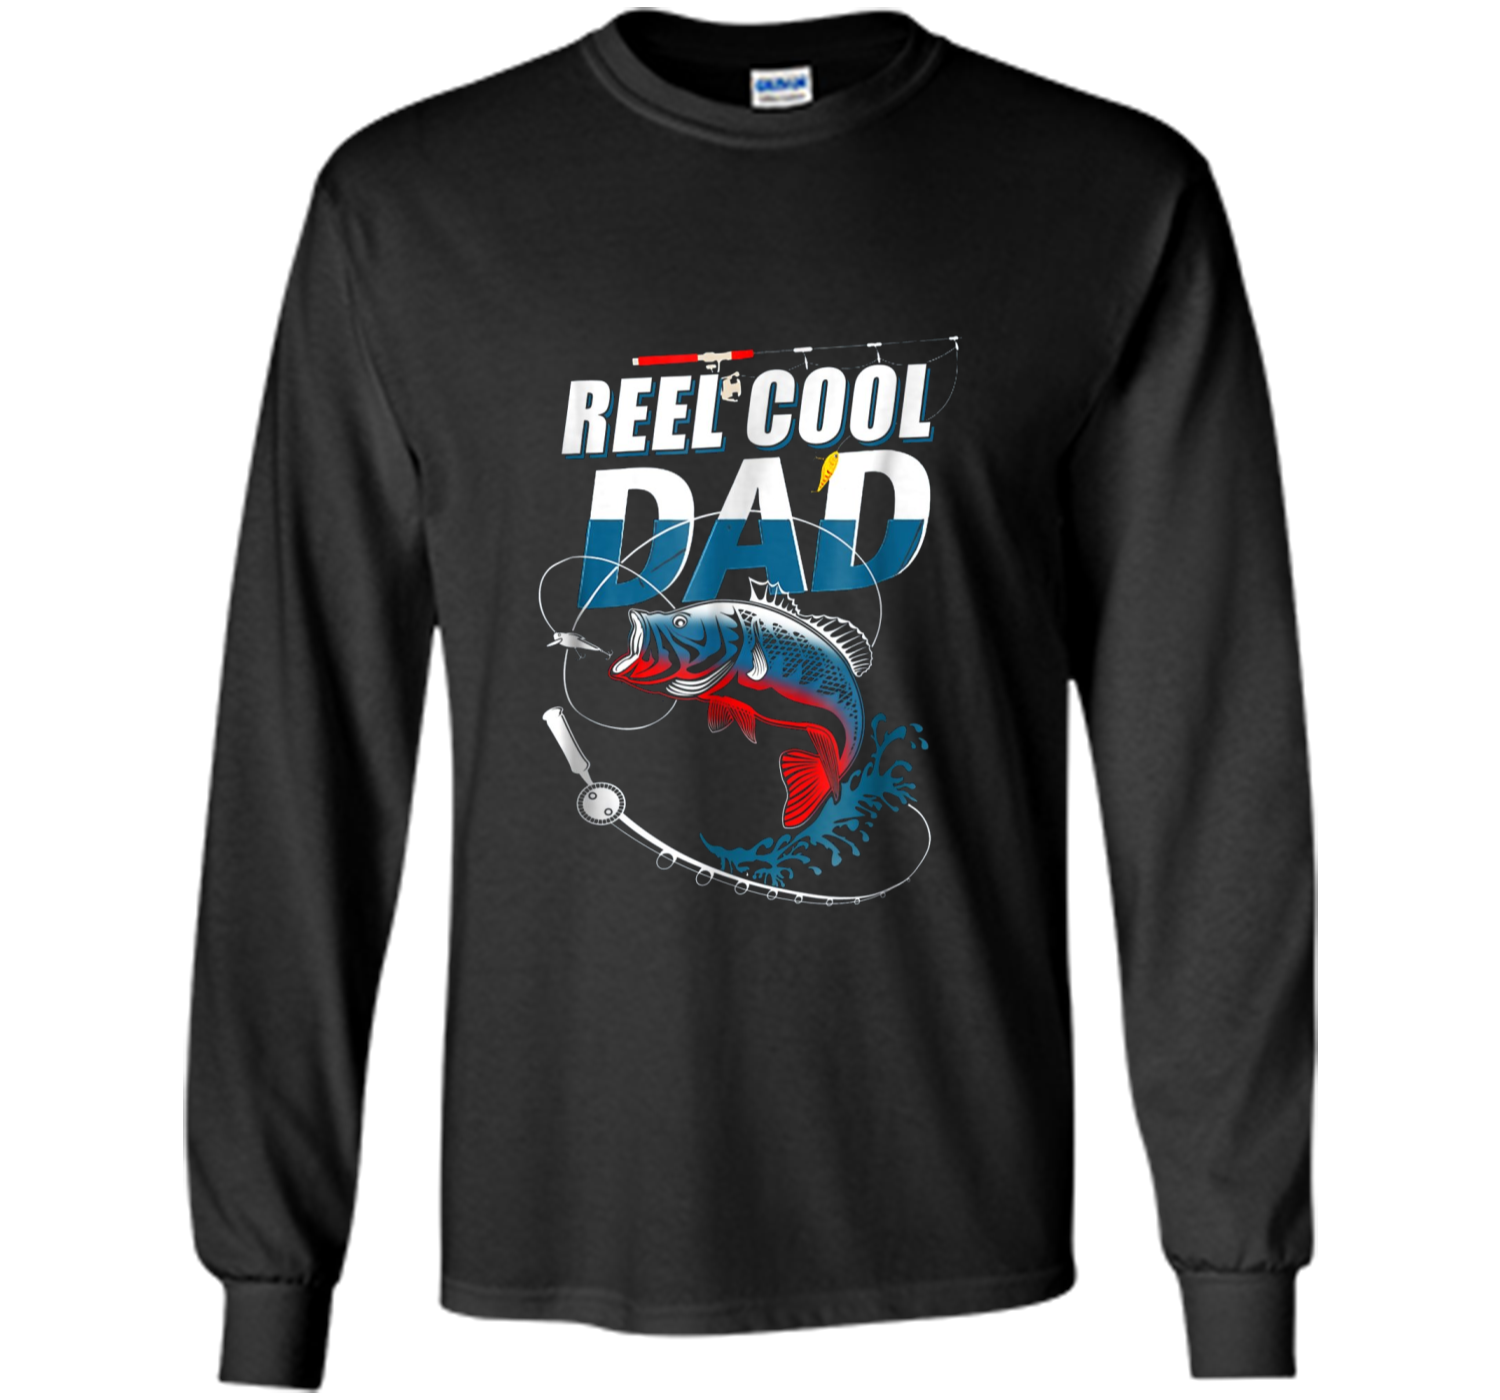 1f127e8e4 Mens Reel Cool Dad T-Shirt Fishing Daddy Father's Day Gift S LS ...